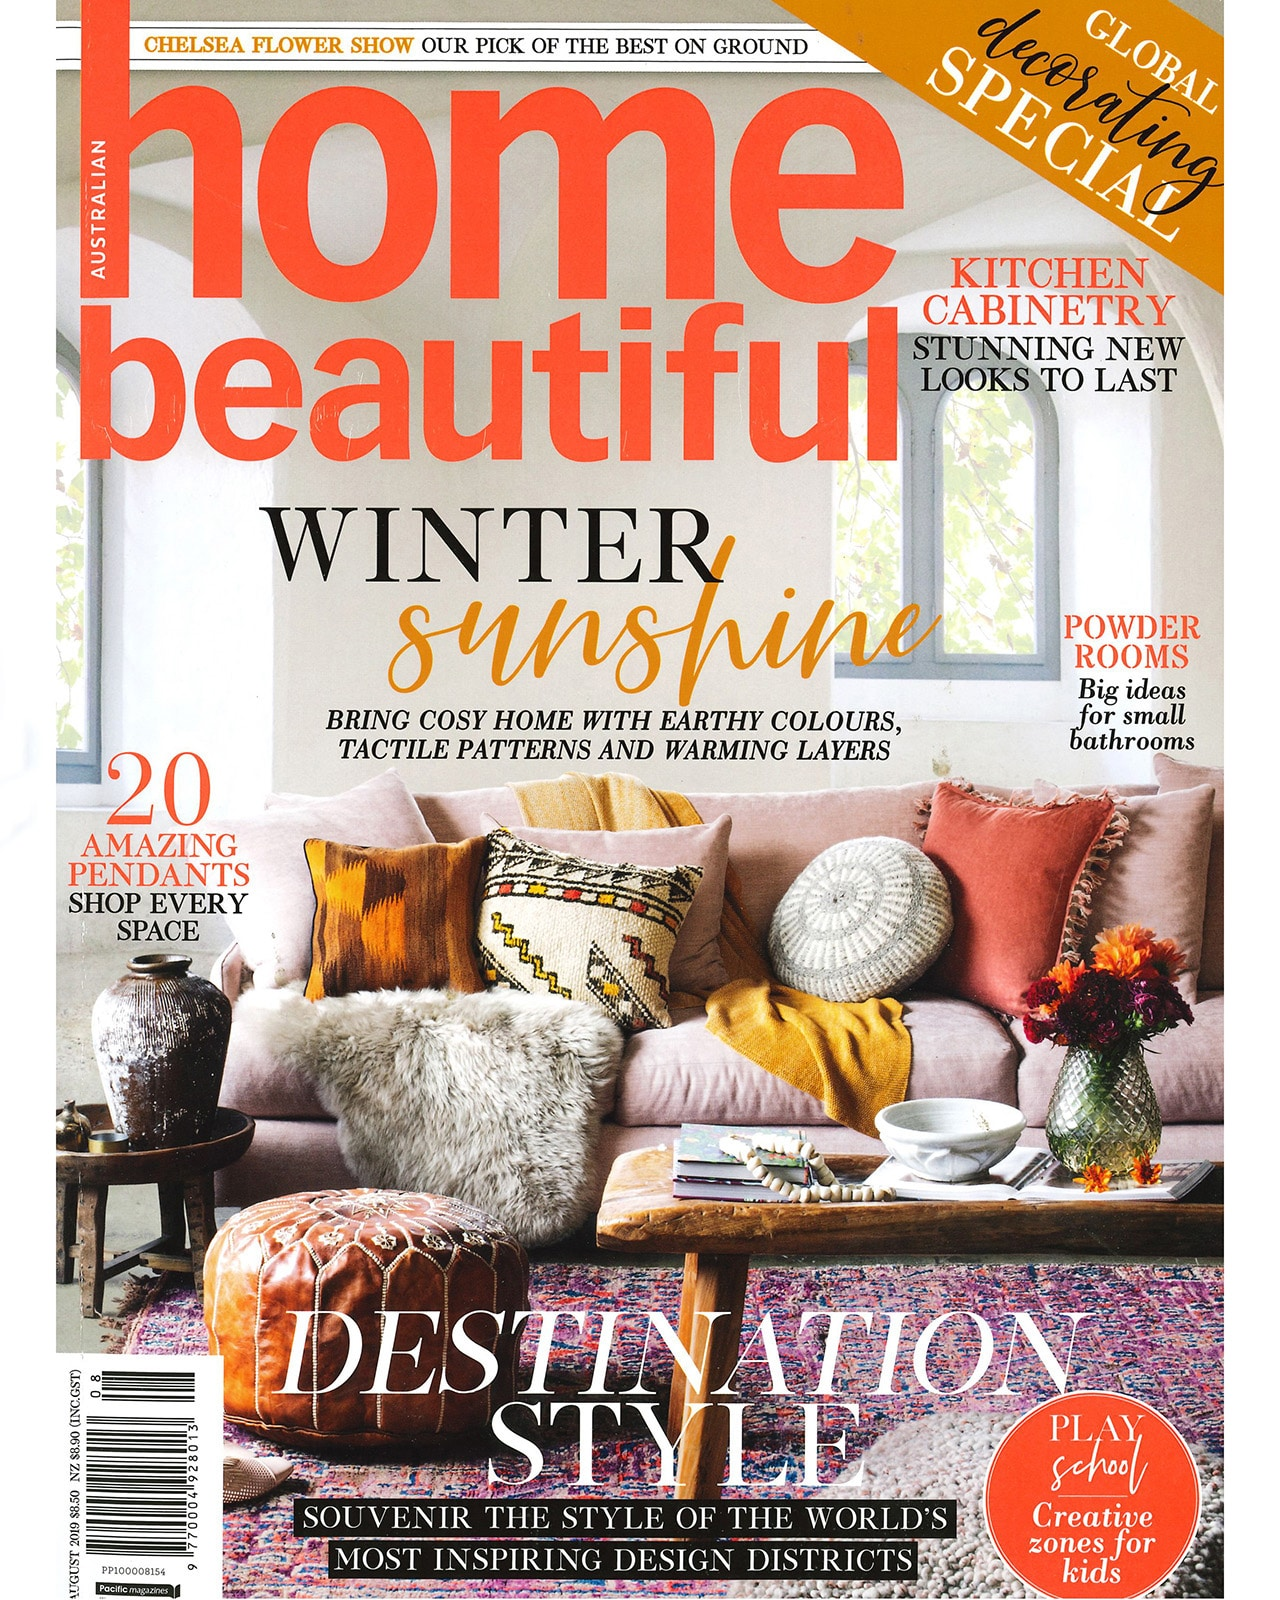 Studio Black Interiors featured in Home Beautiful Magazine Winter.